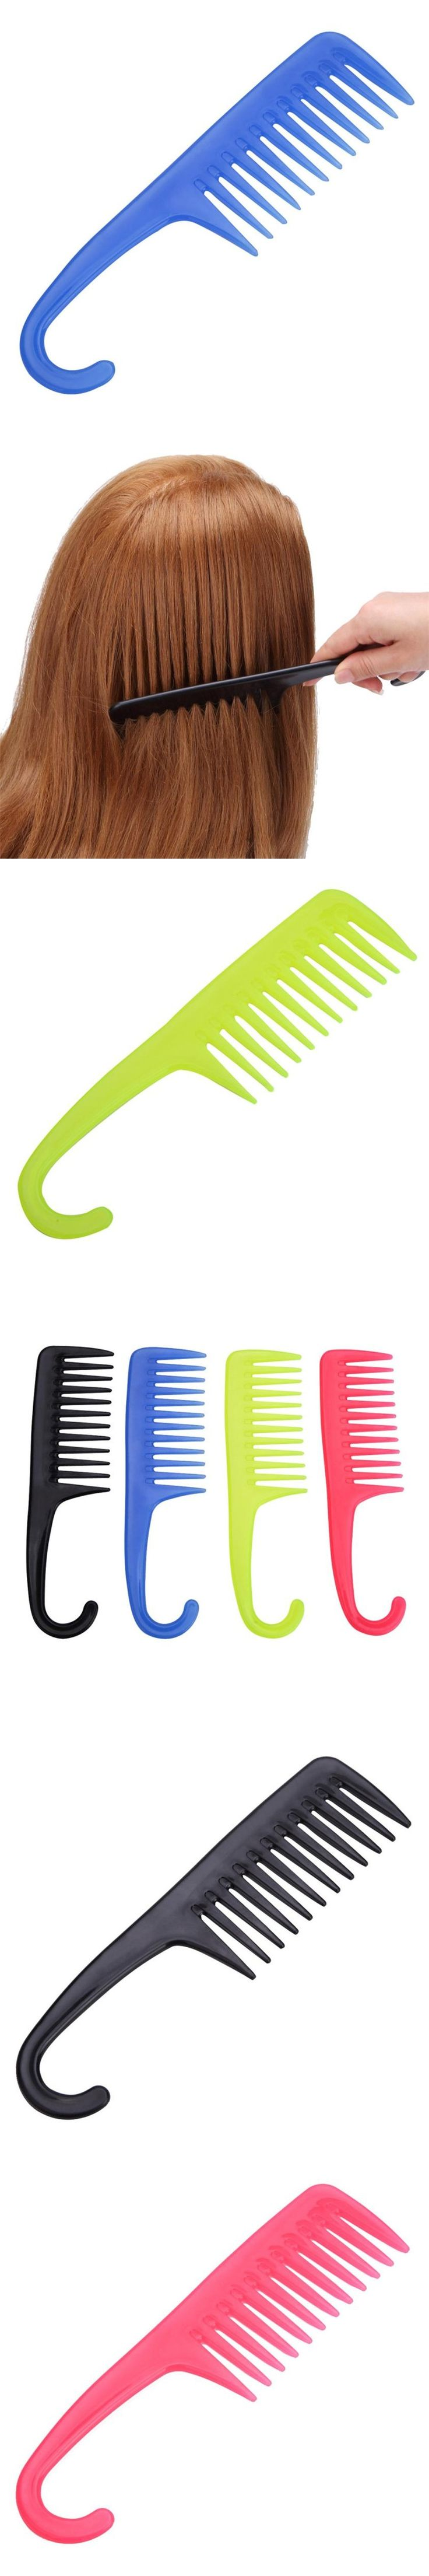 Hair Styling Comb Set Professional Black Hairdressing Brush Salon Barbers X81825Down